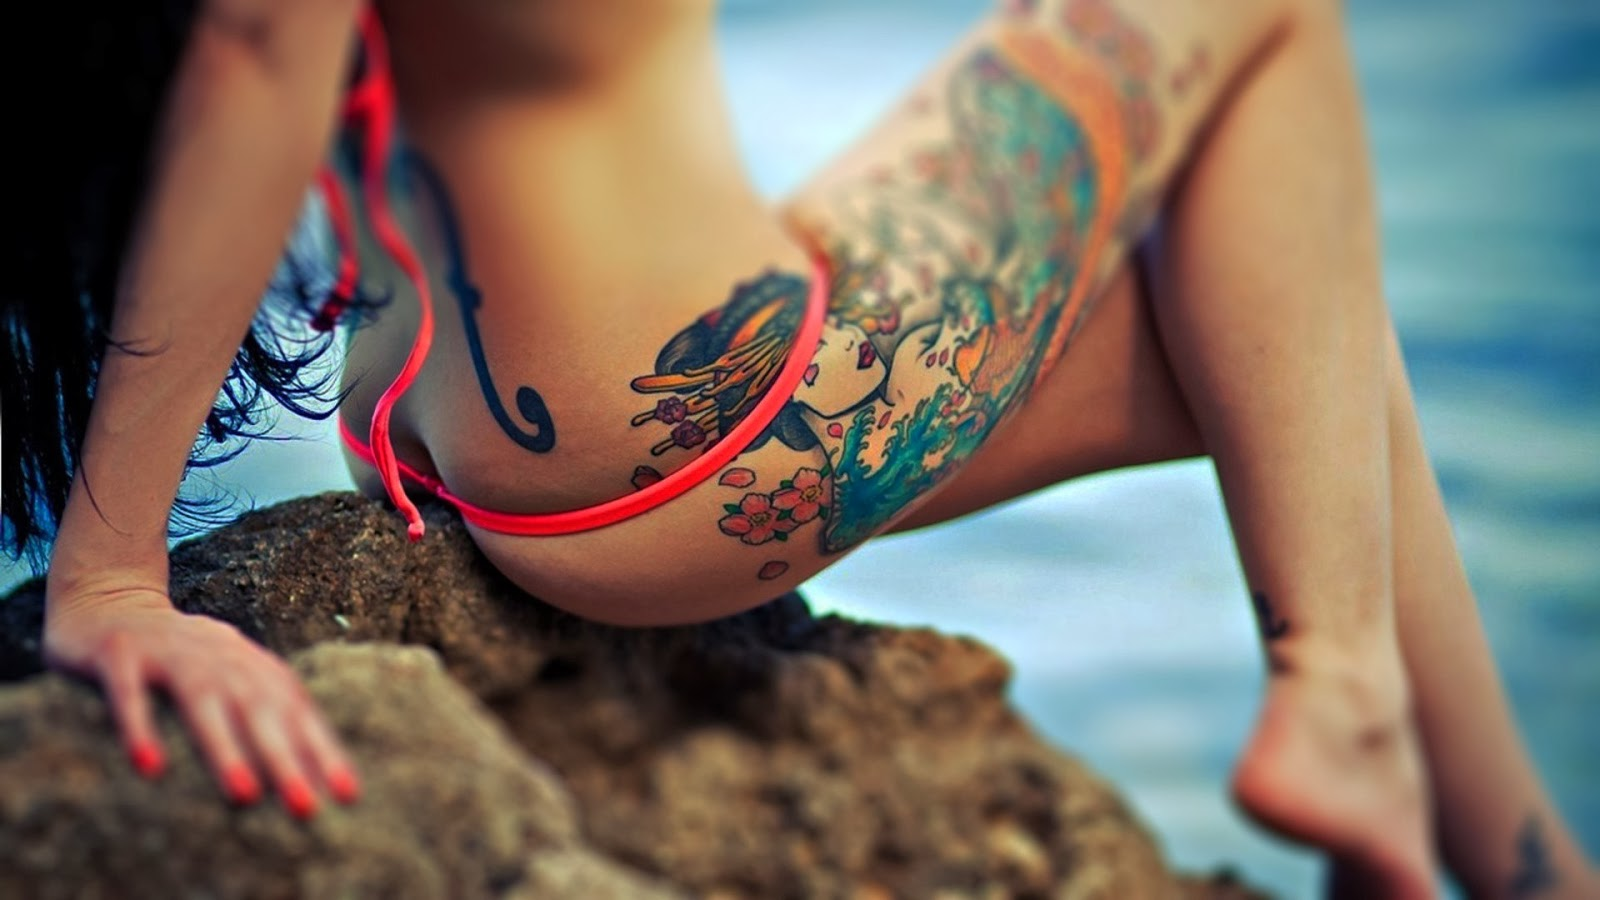 Tattoo girl wallpaper 24 voltagebd Image collections